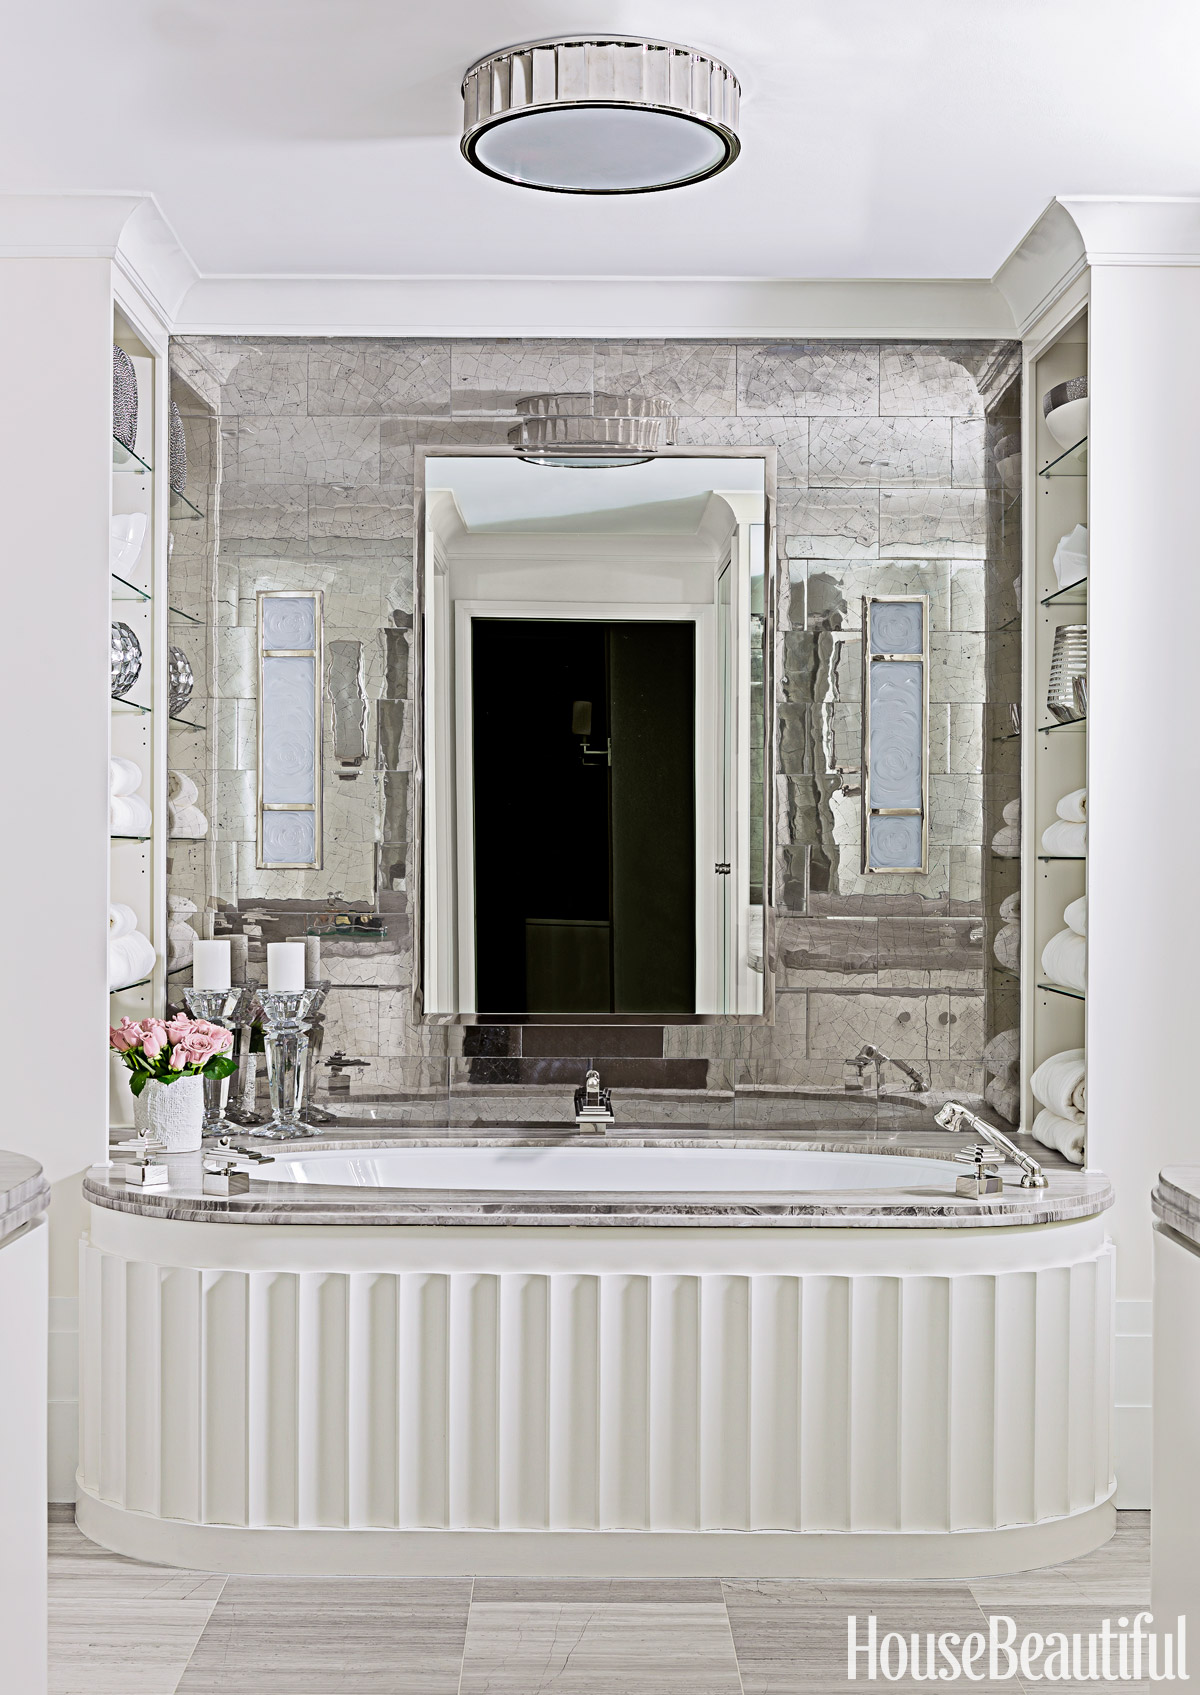 30 Wonderful Pictures And Ideas Art Deco Bathroom Tile Design